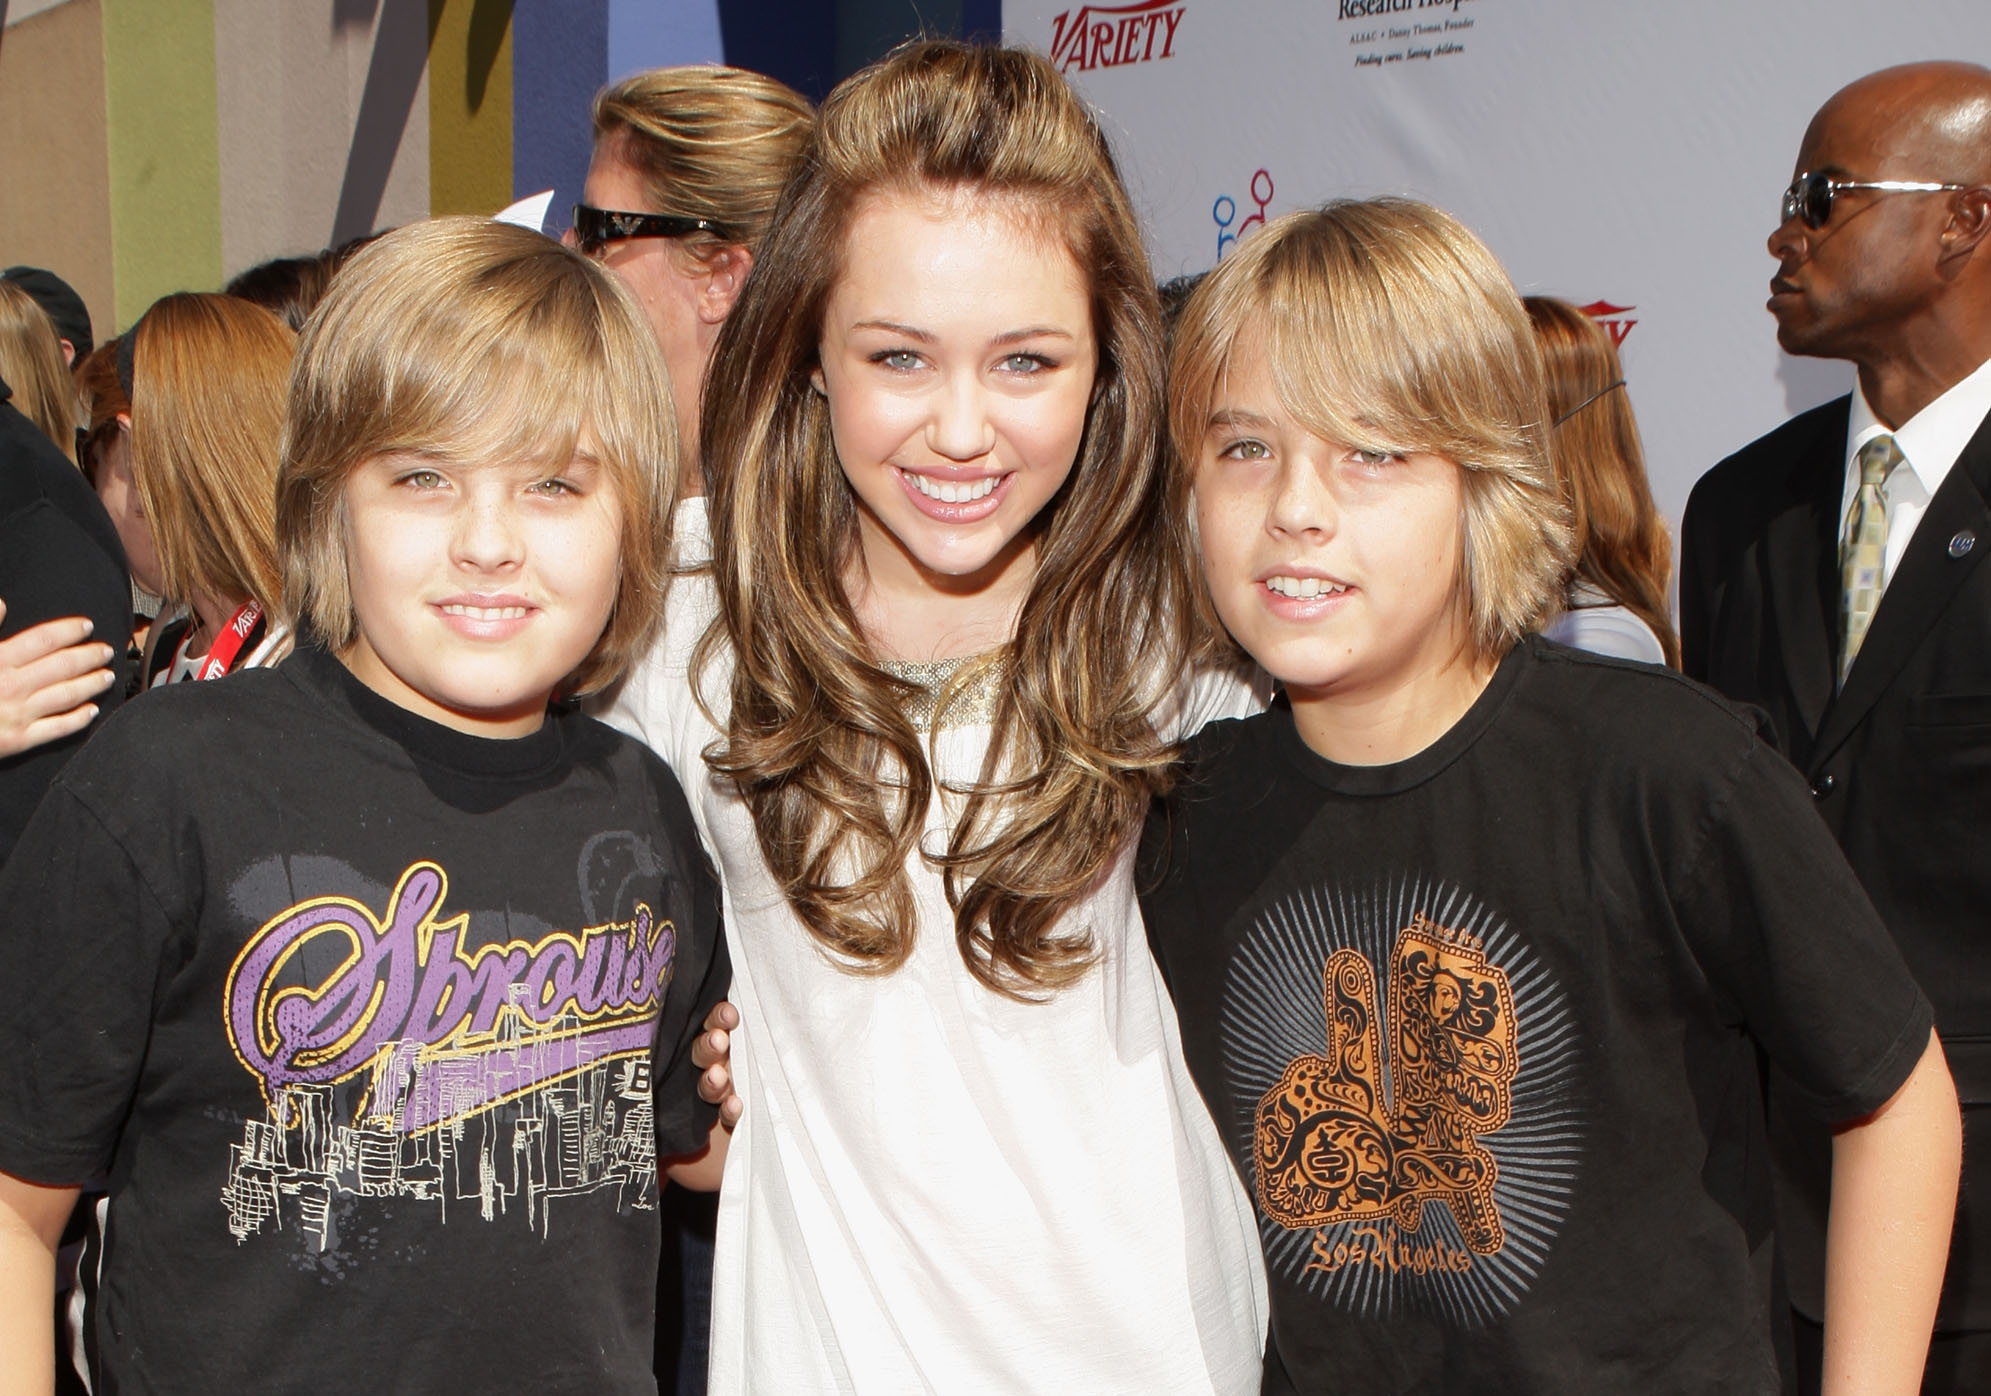 miley-is-taller-than-sprouses